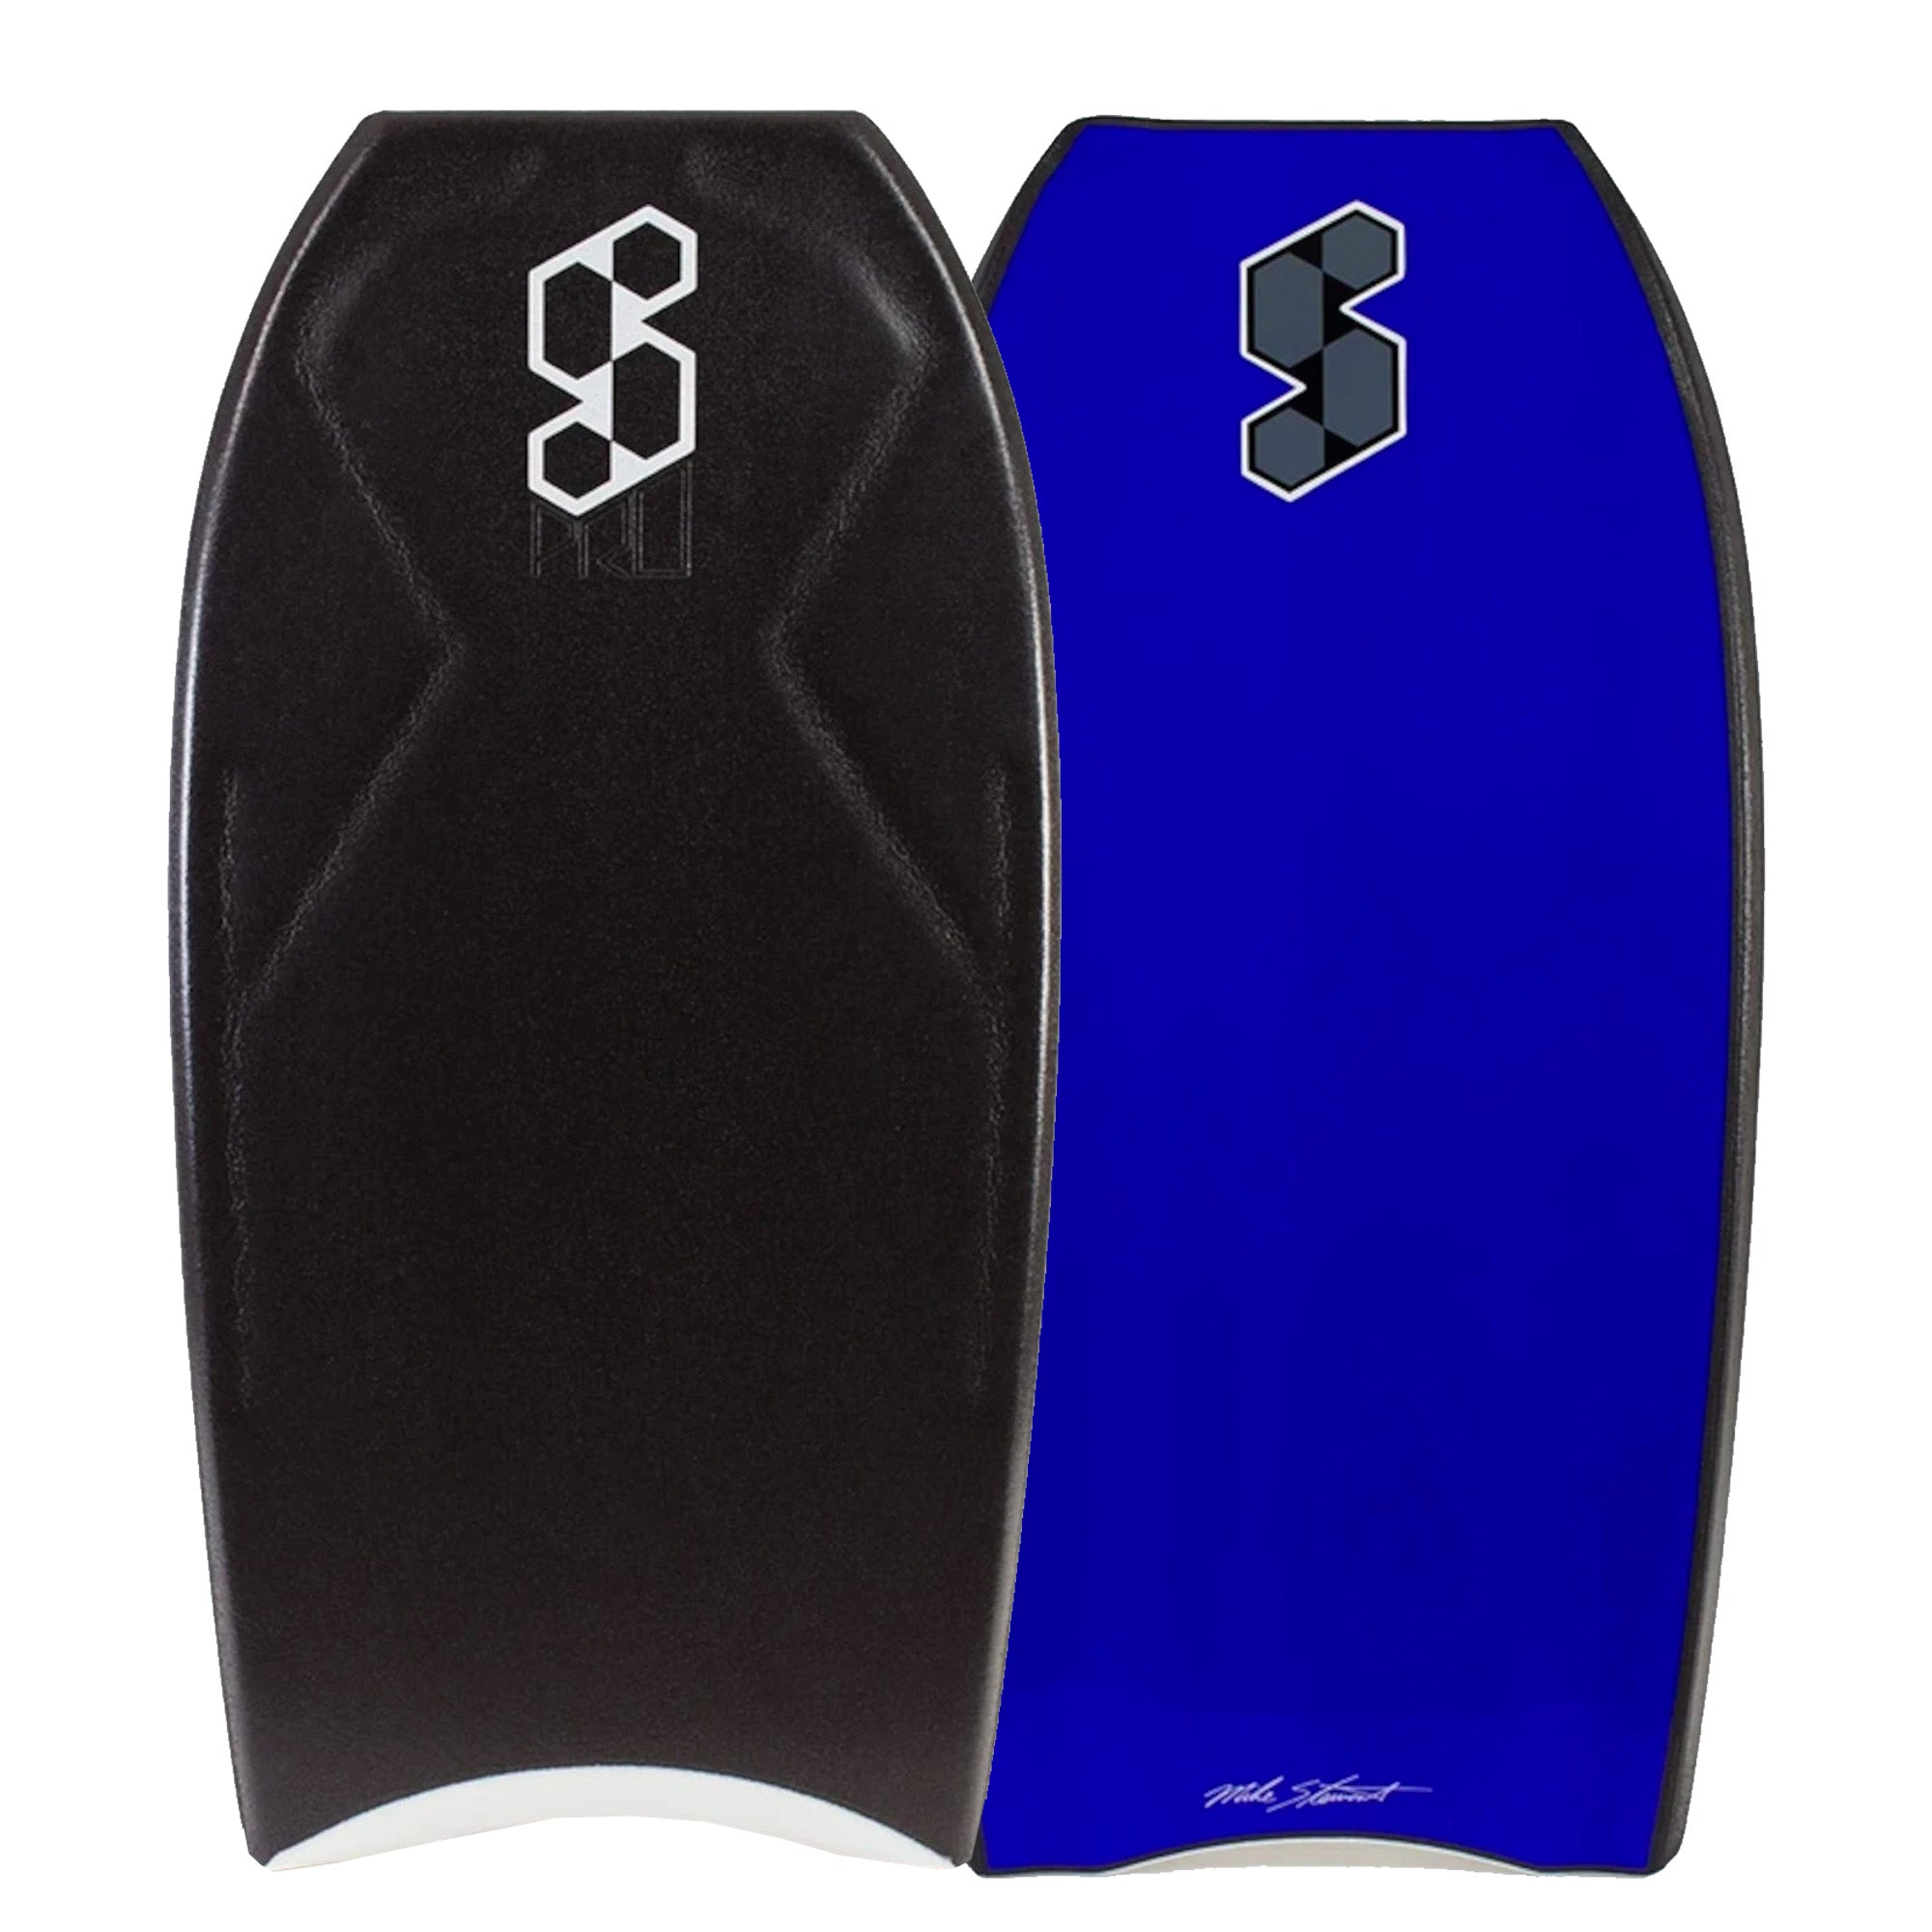 "Mike Stewart Science Pro Team PP 41.25"" Bodyboard - Black/Blue"